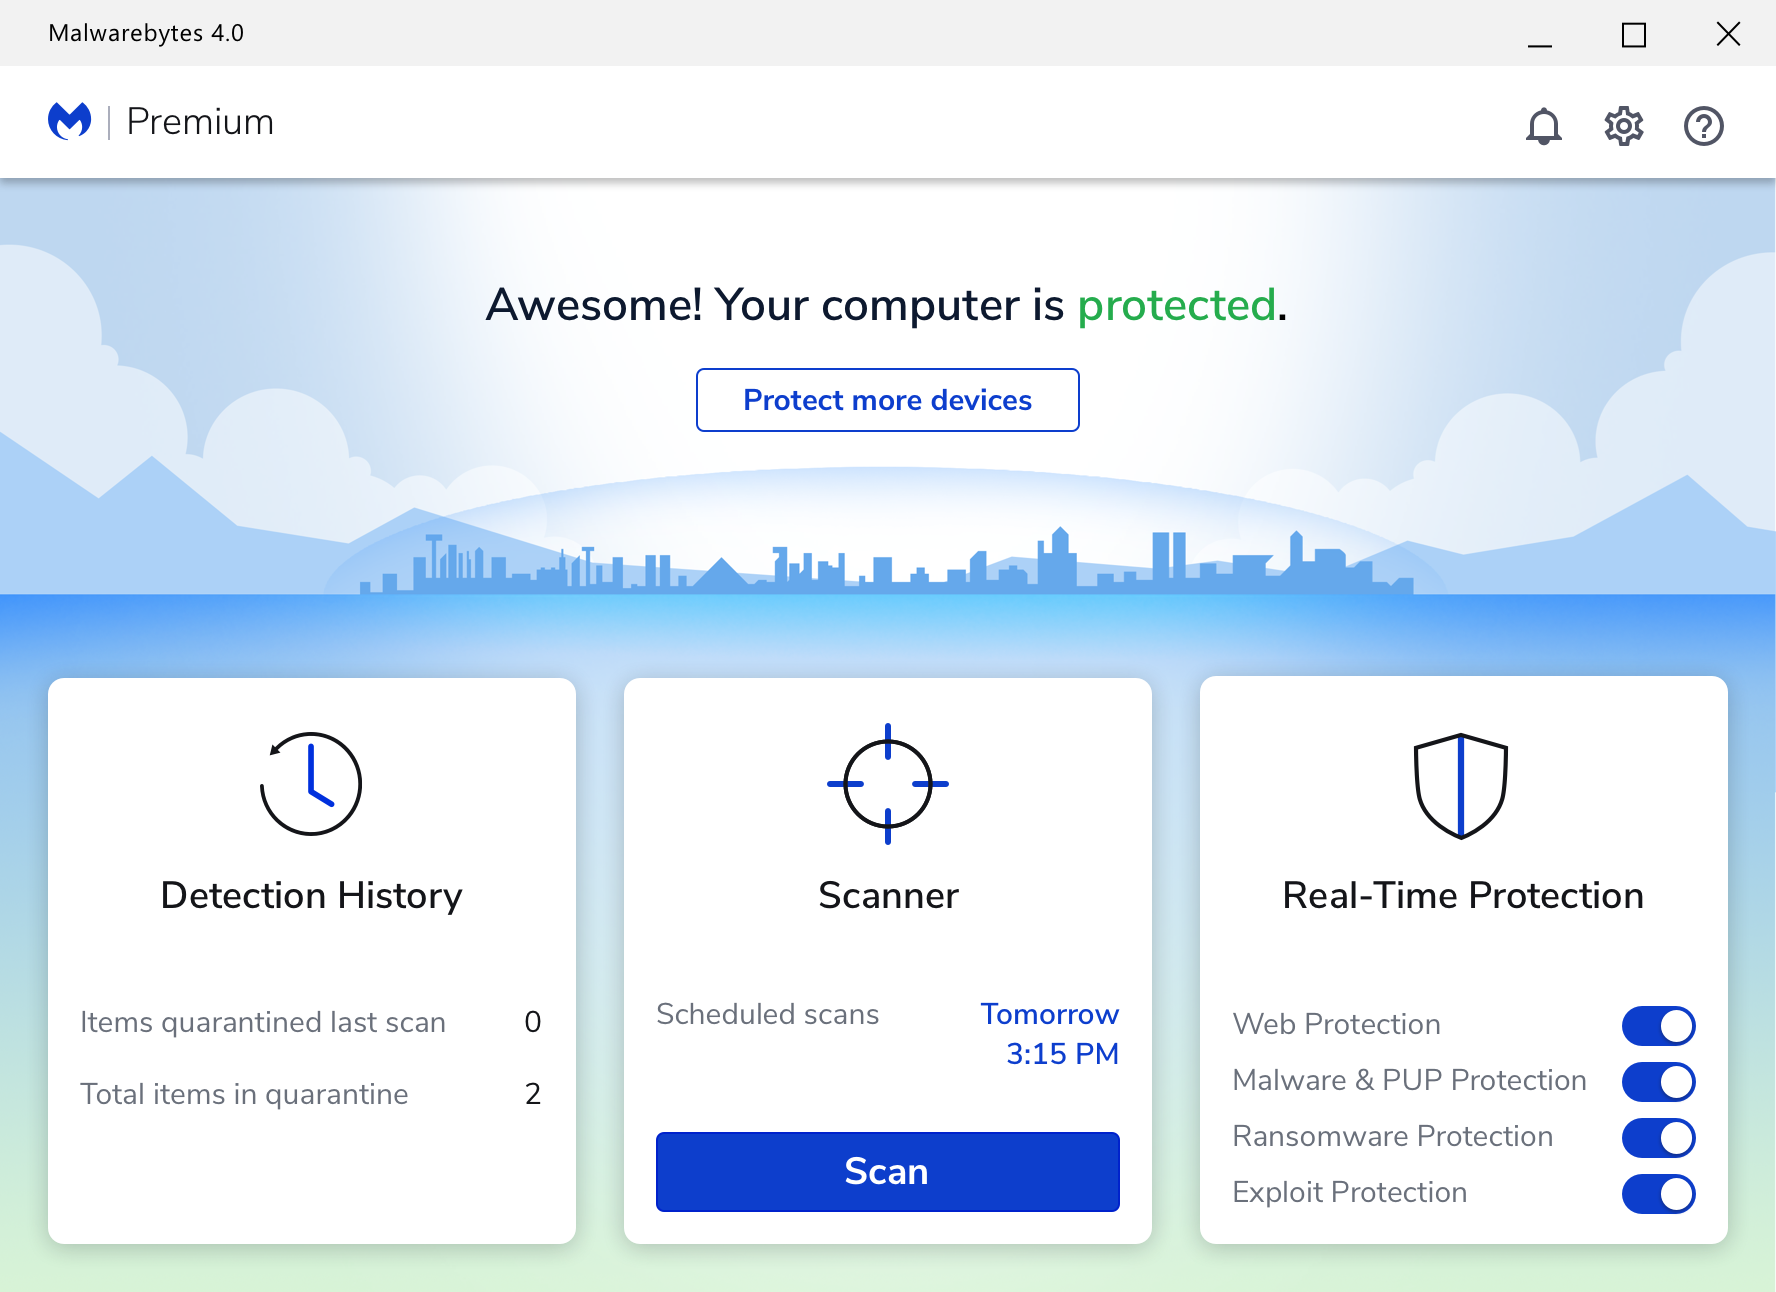 MalwareBytes CyberSecurity